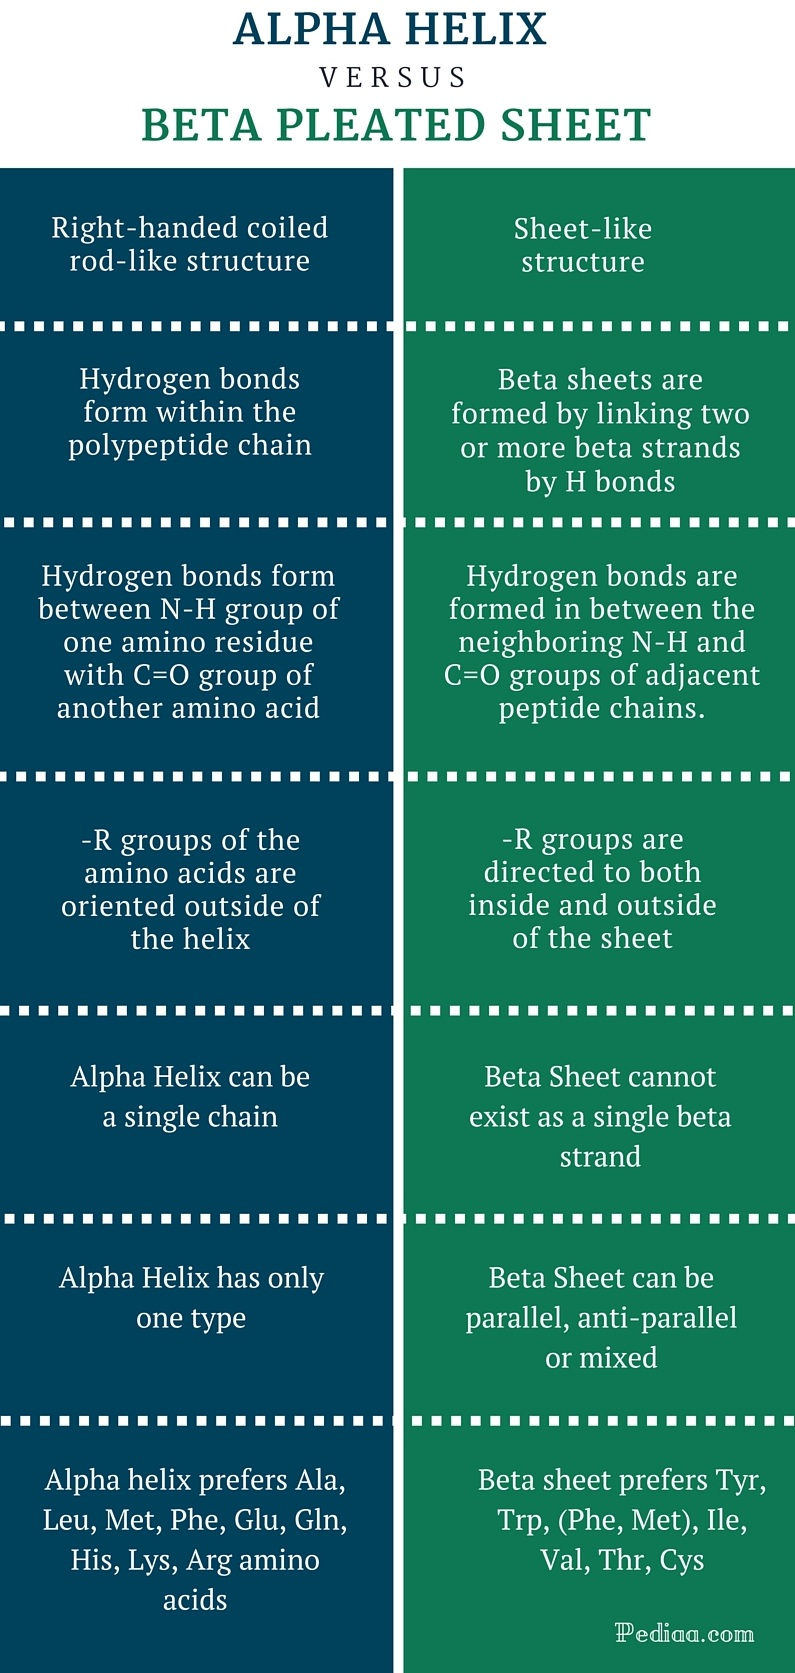 Difference Between Alpha Helix and Beta Pleated Sheet -infographic